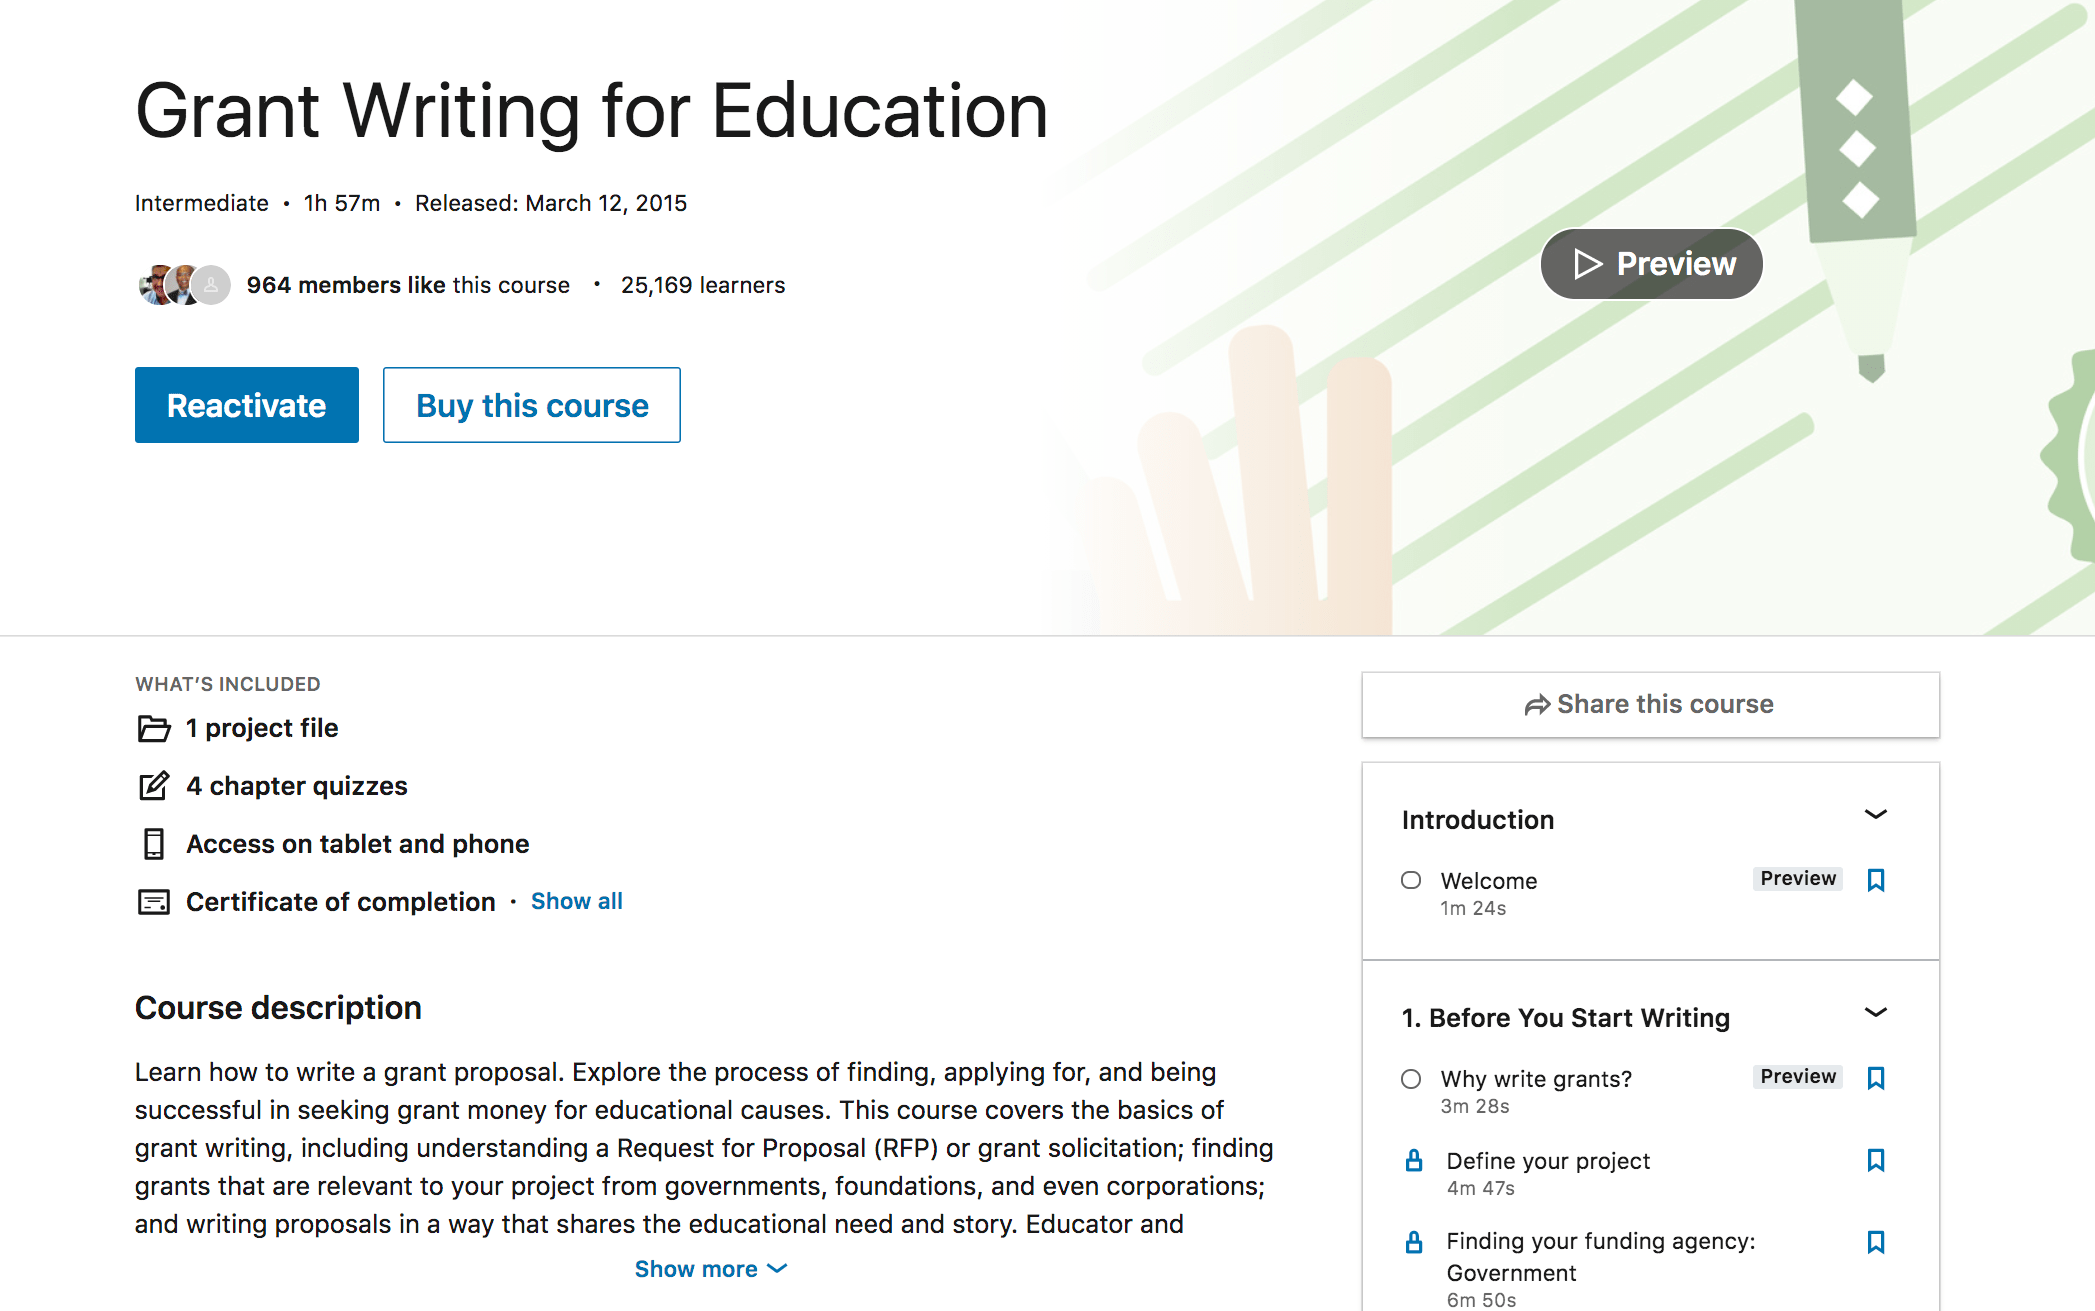 Grant Writing For Education - LinkedIn Learning